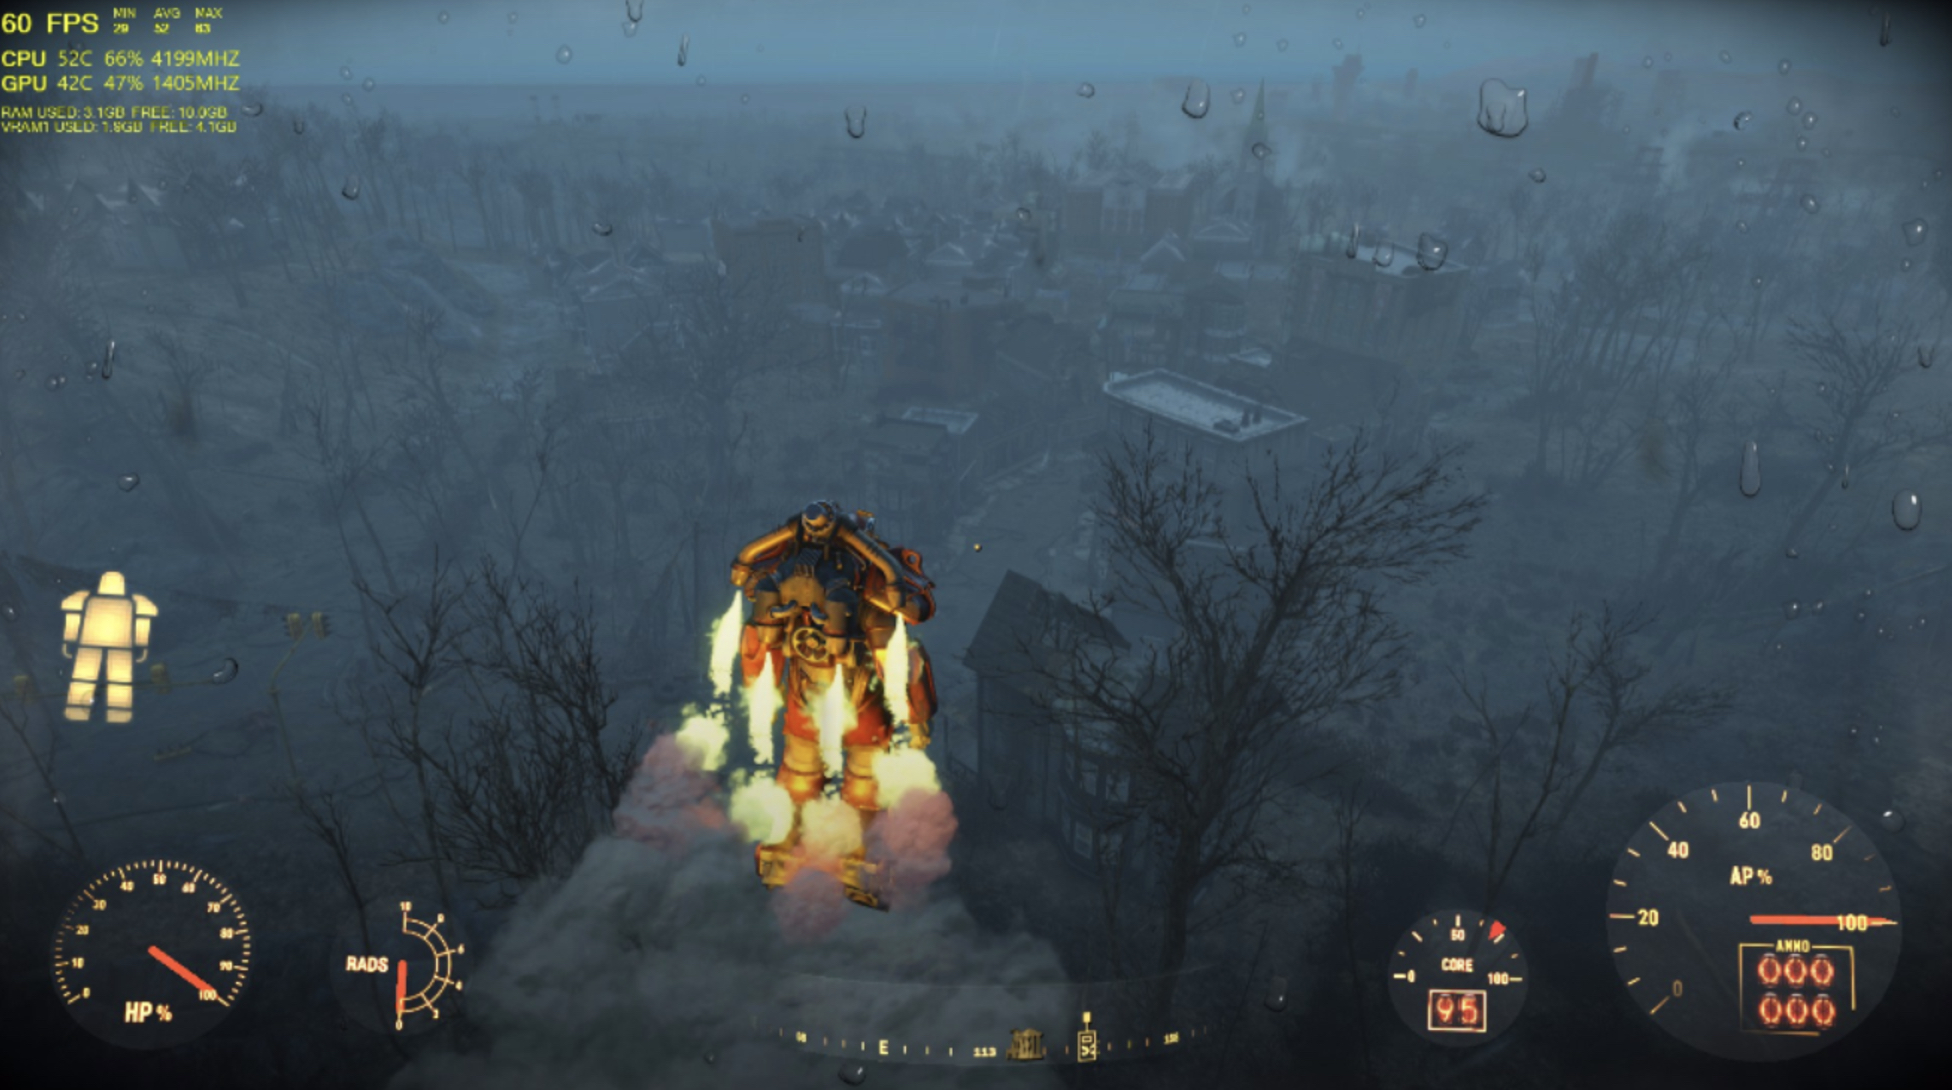 fallout 4 command for level up